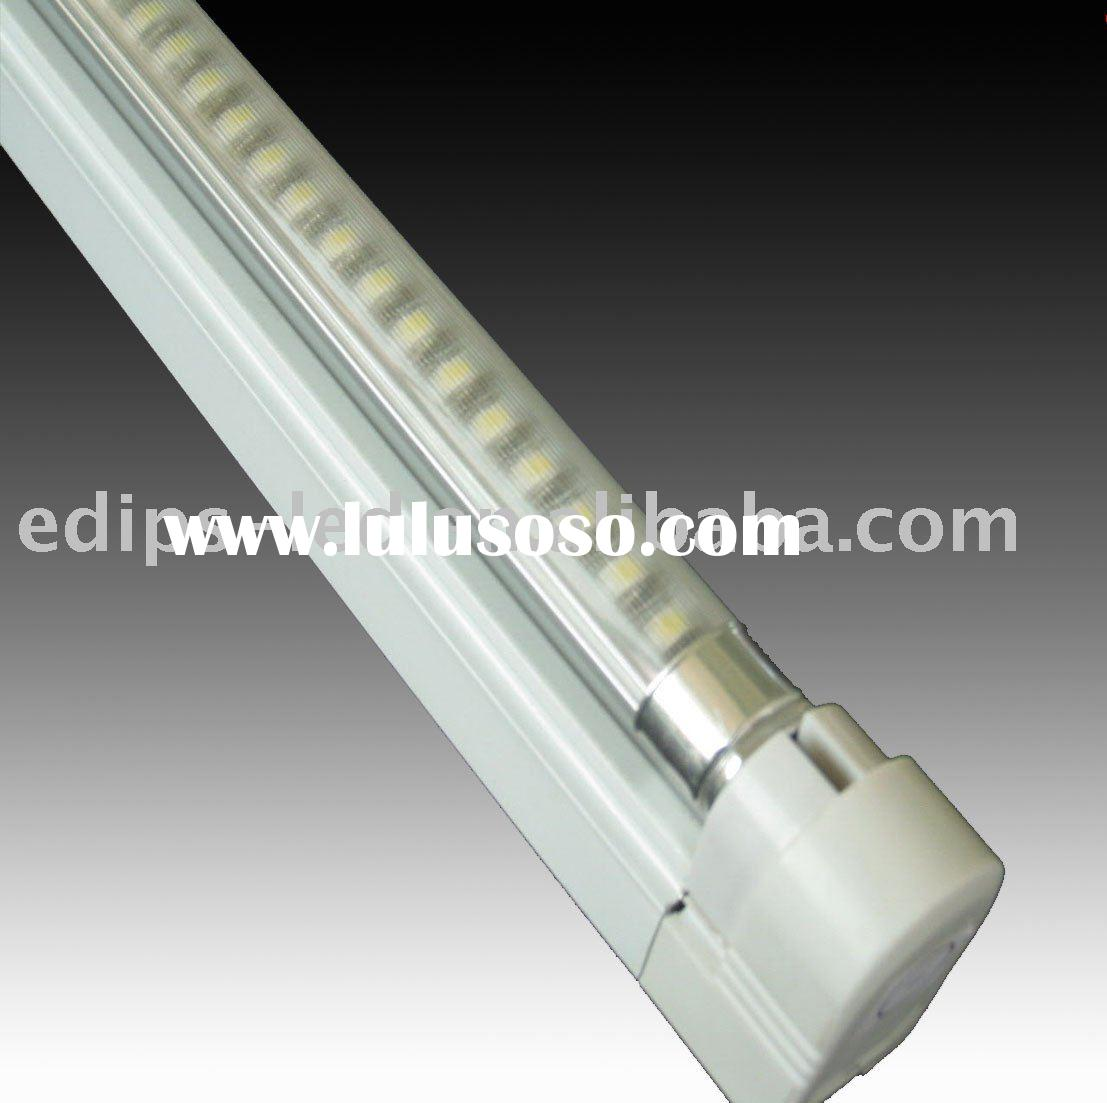 T5 LED Tube Replacement Light with holder